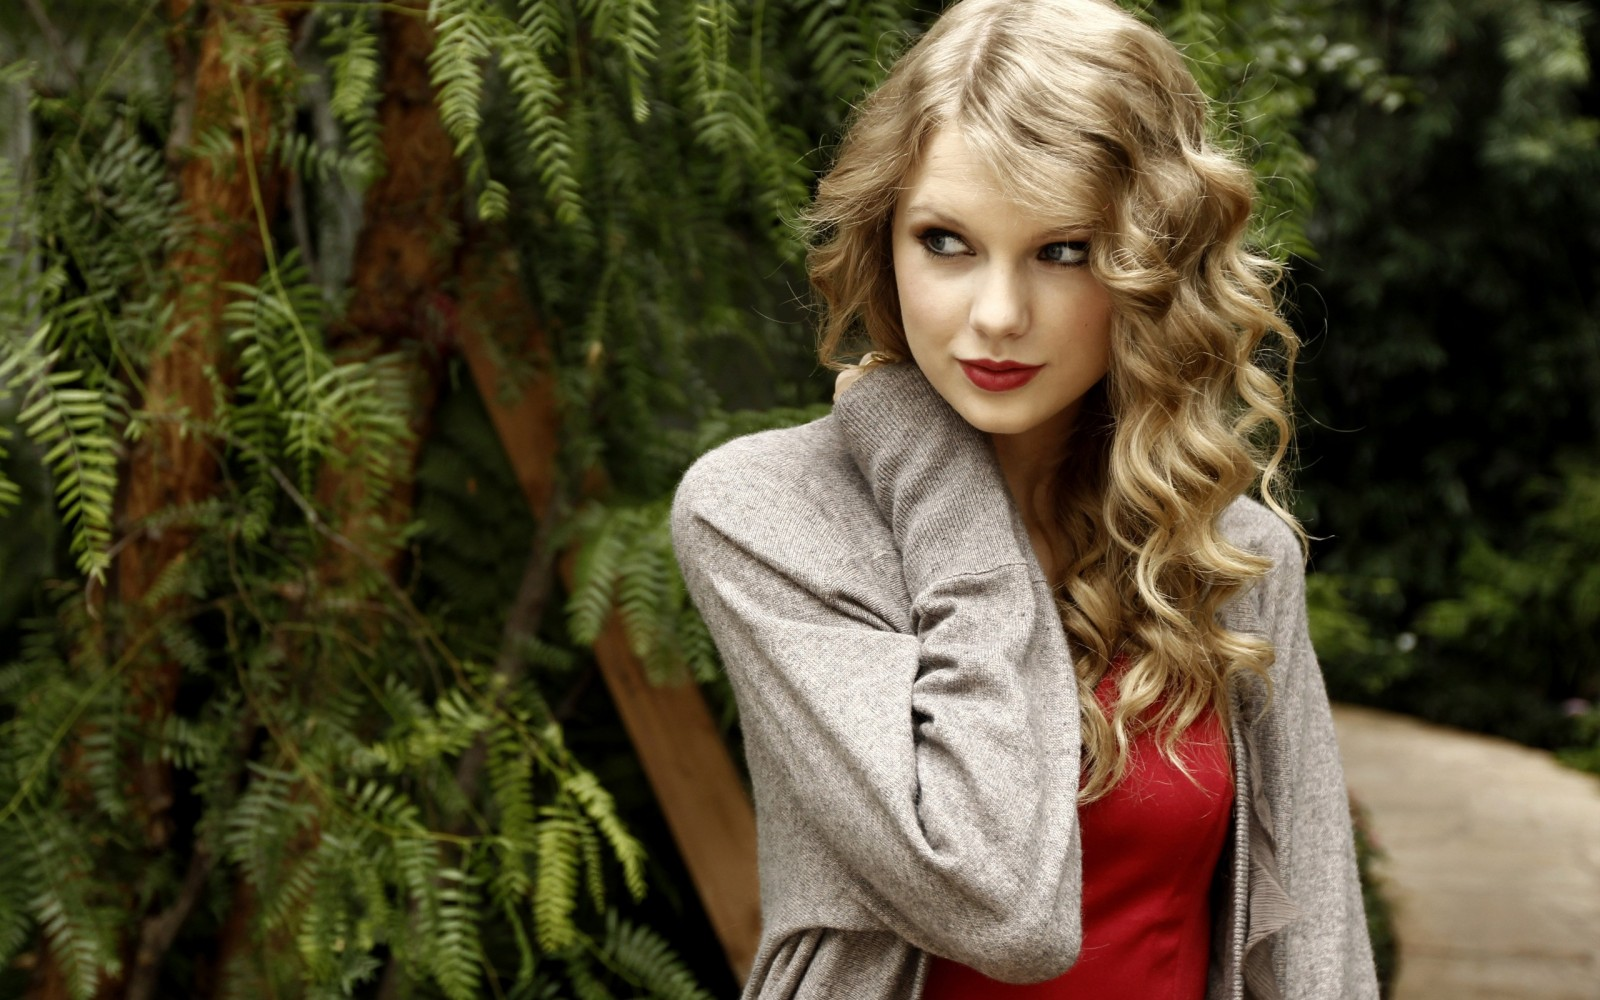 Taylor Swift 2013 wallpaper HD Wallpaper 1600x1000